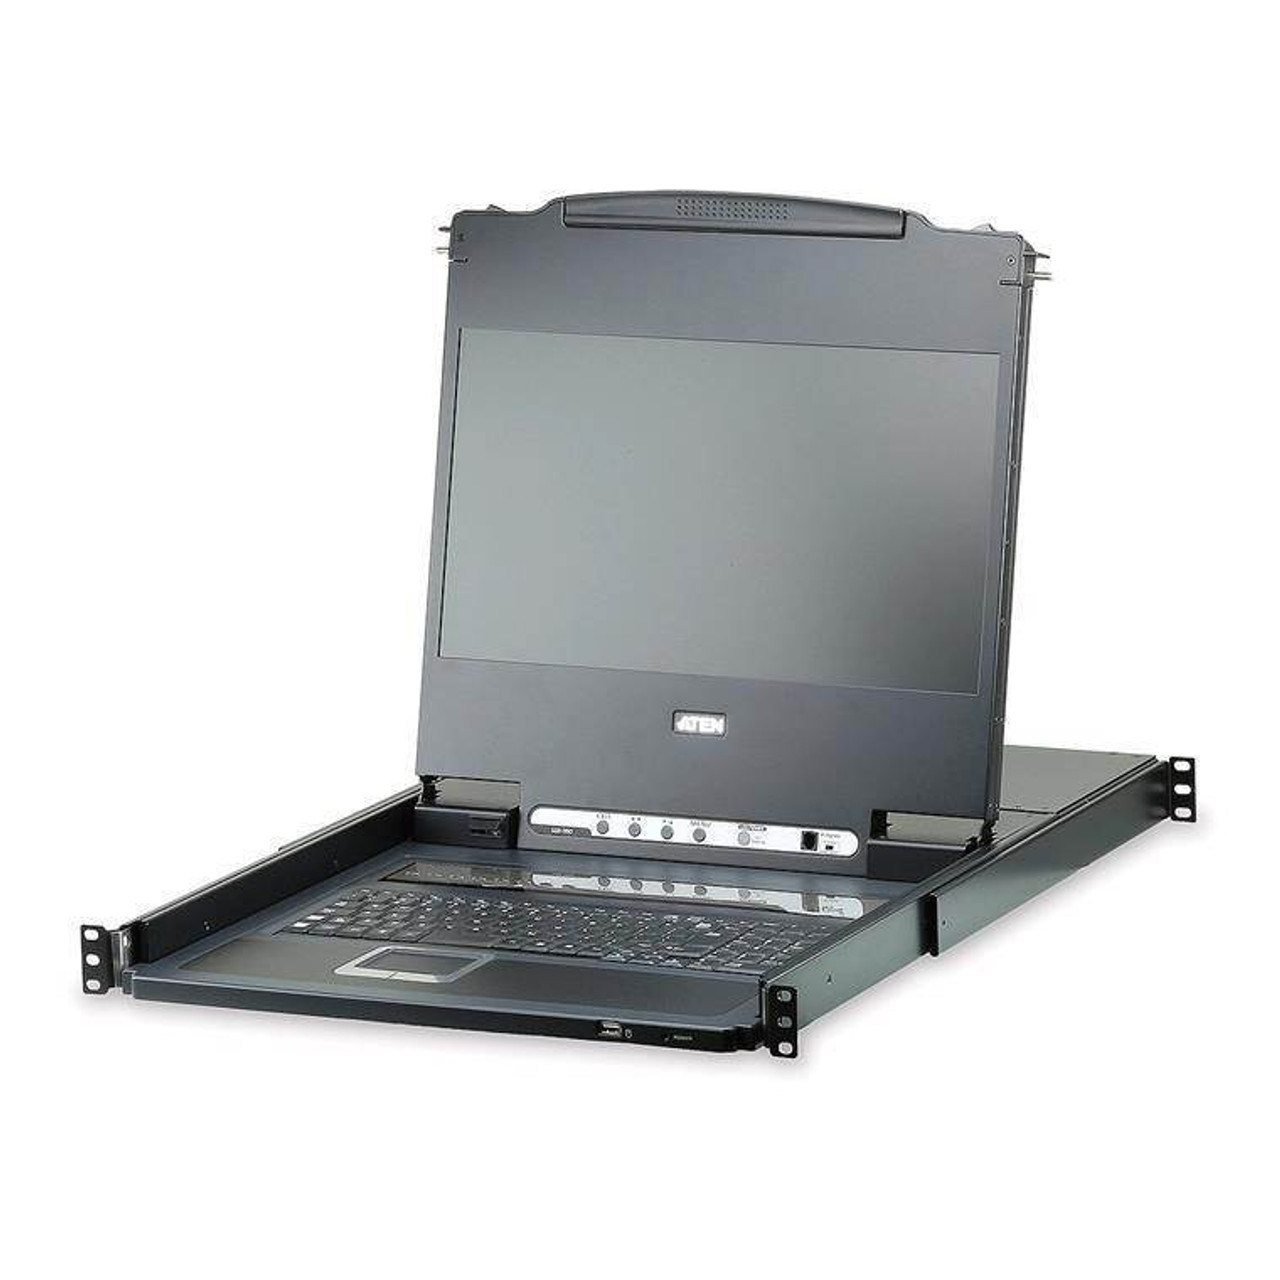 Image for ATEN CL6708MW Single Rail 8 Port DVI FHD 17.3in LCD KVM Switch CX Computer Superstore